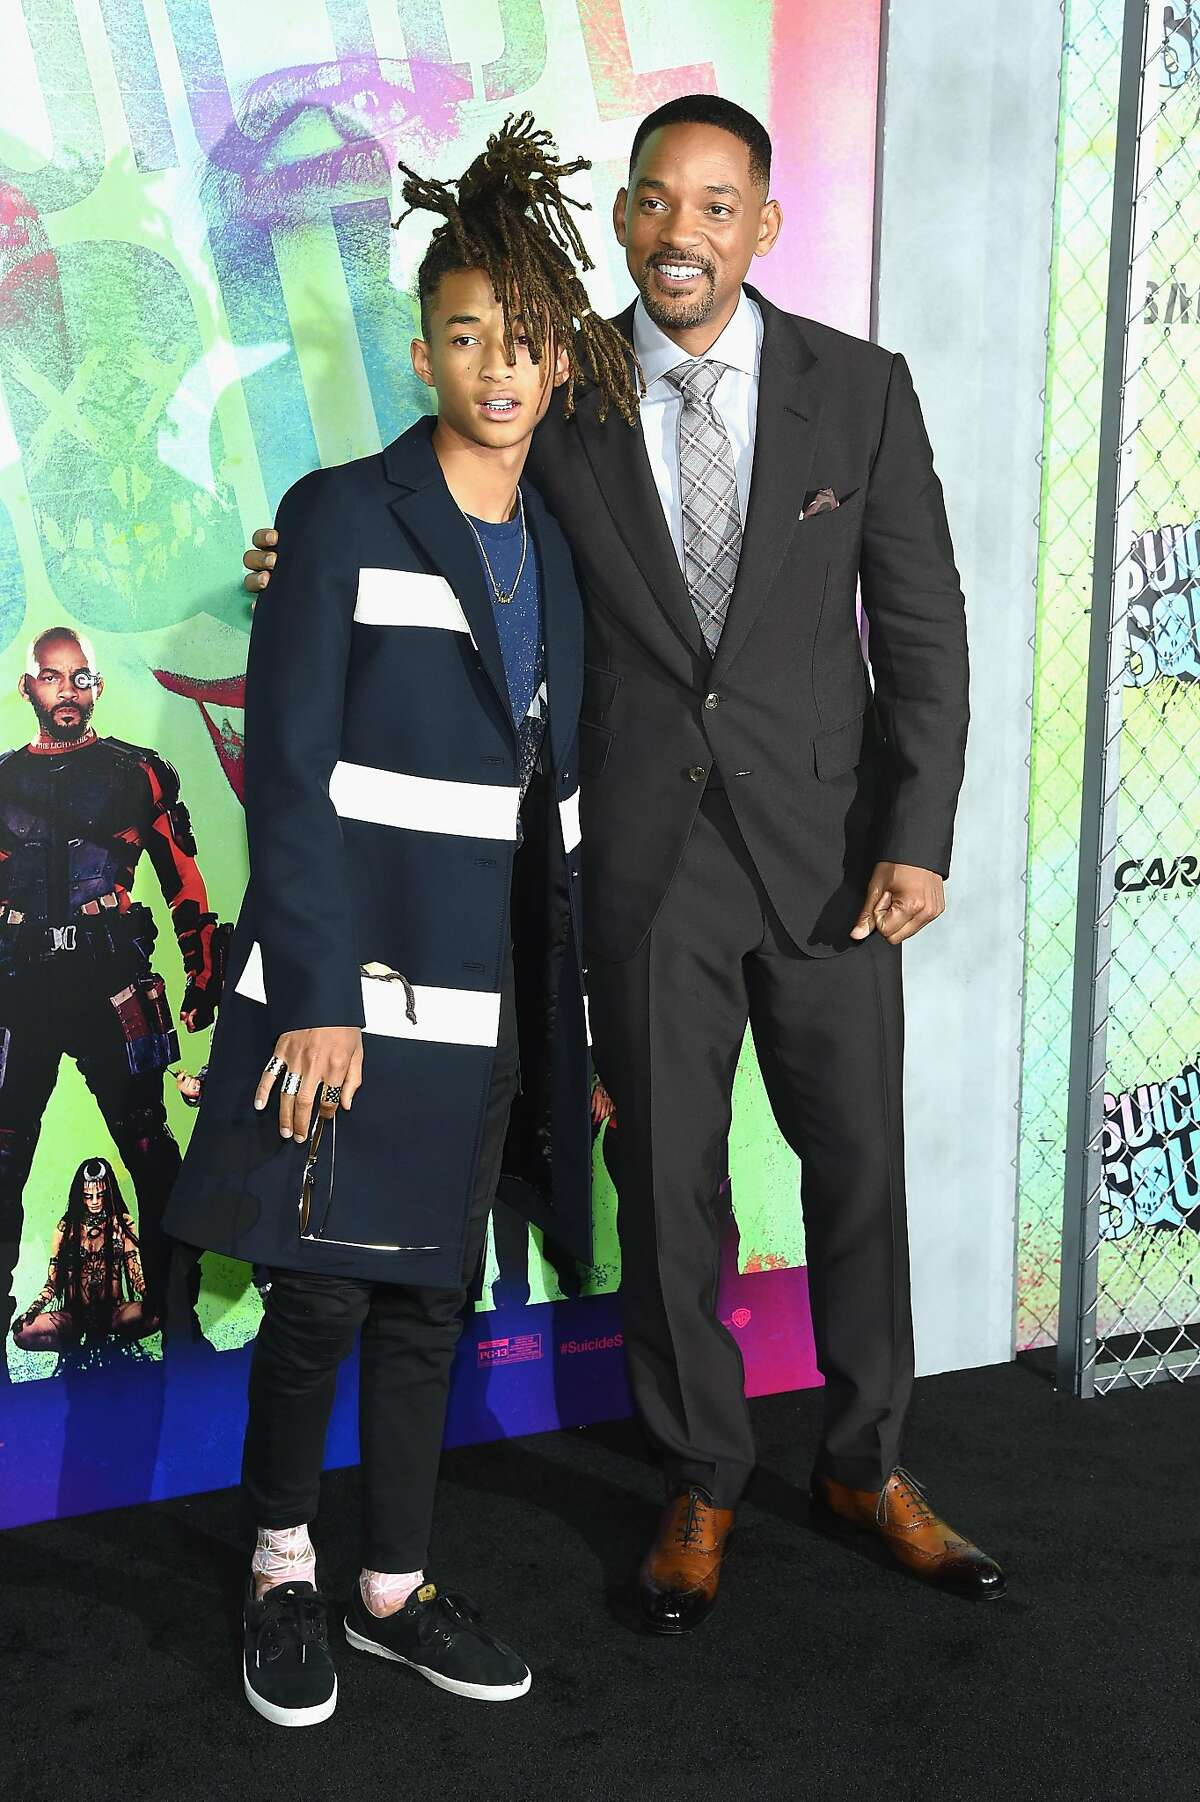 NEW YORK, NY - AUGUST 01: Jaden Smith and Will Smith attend the